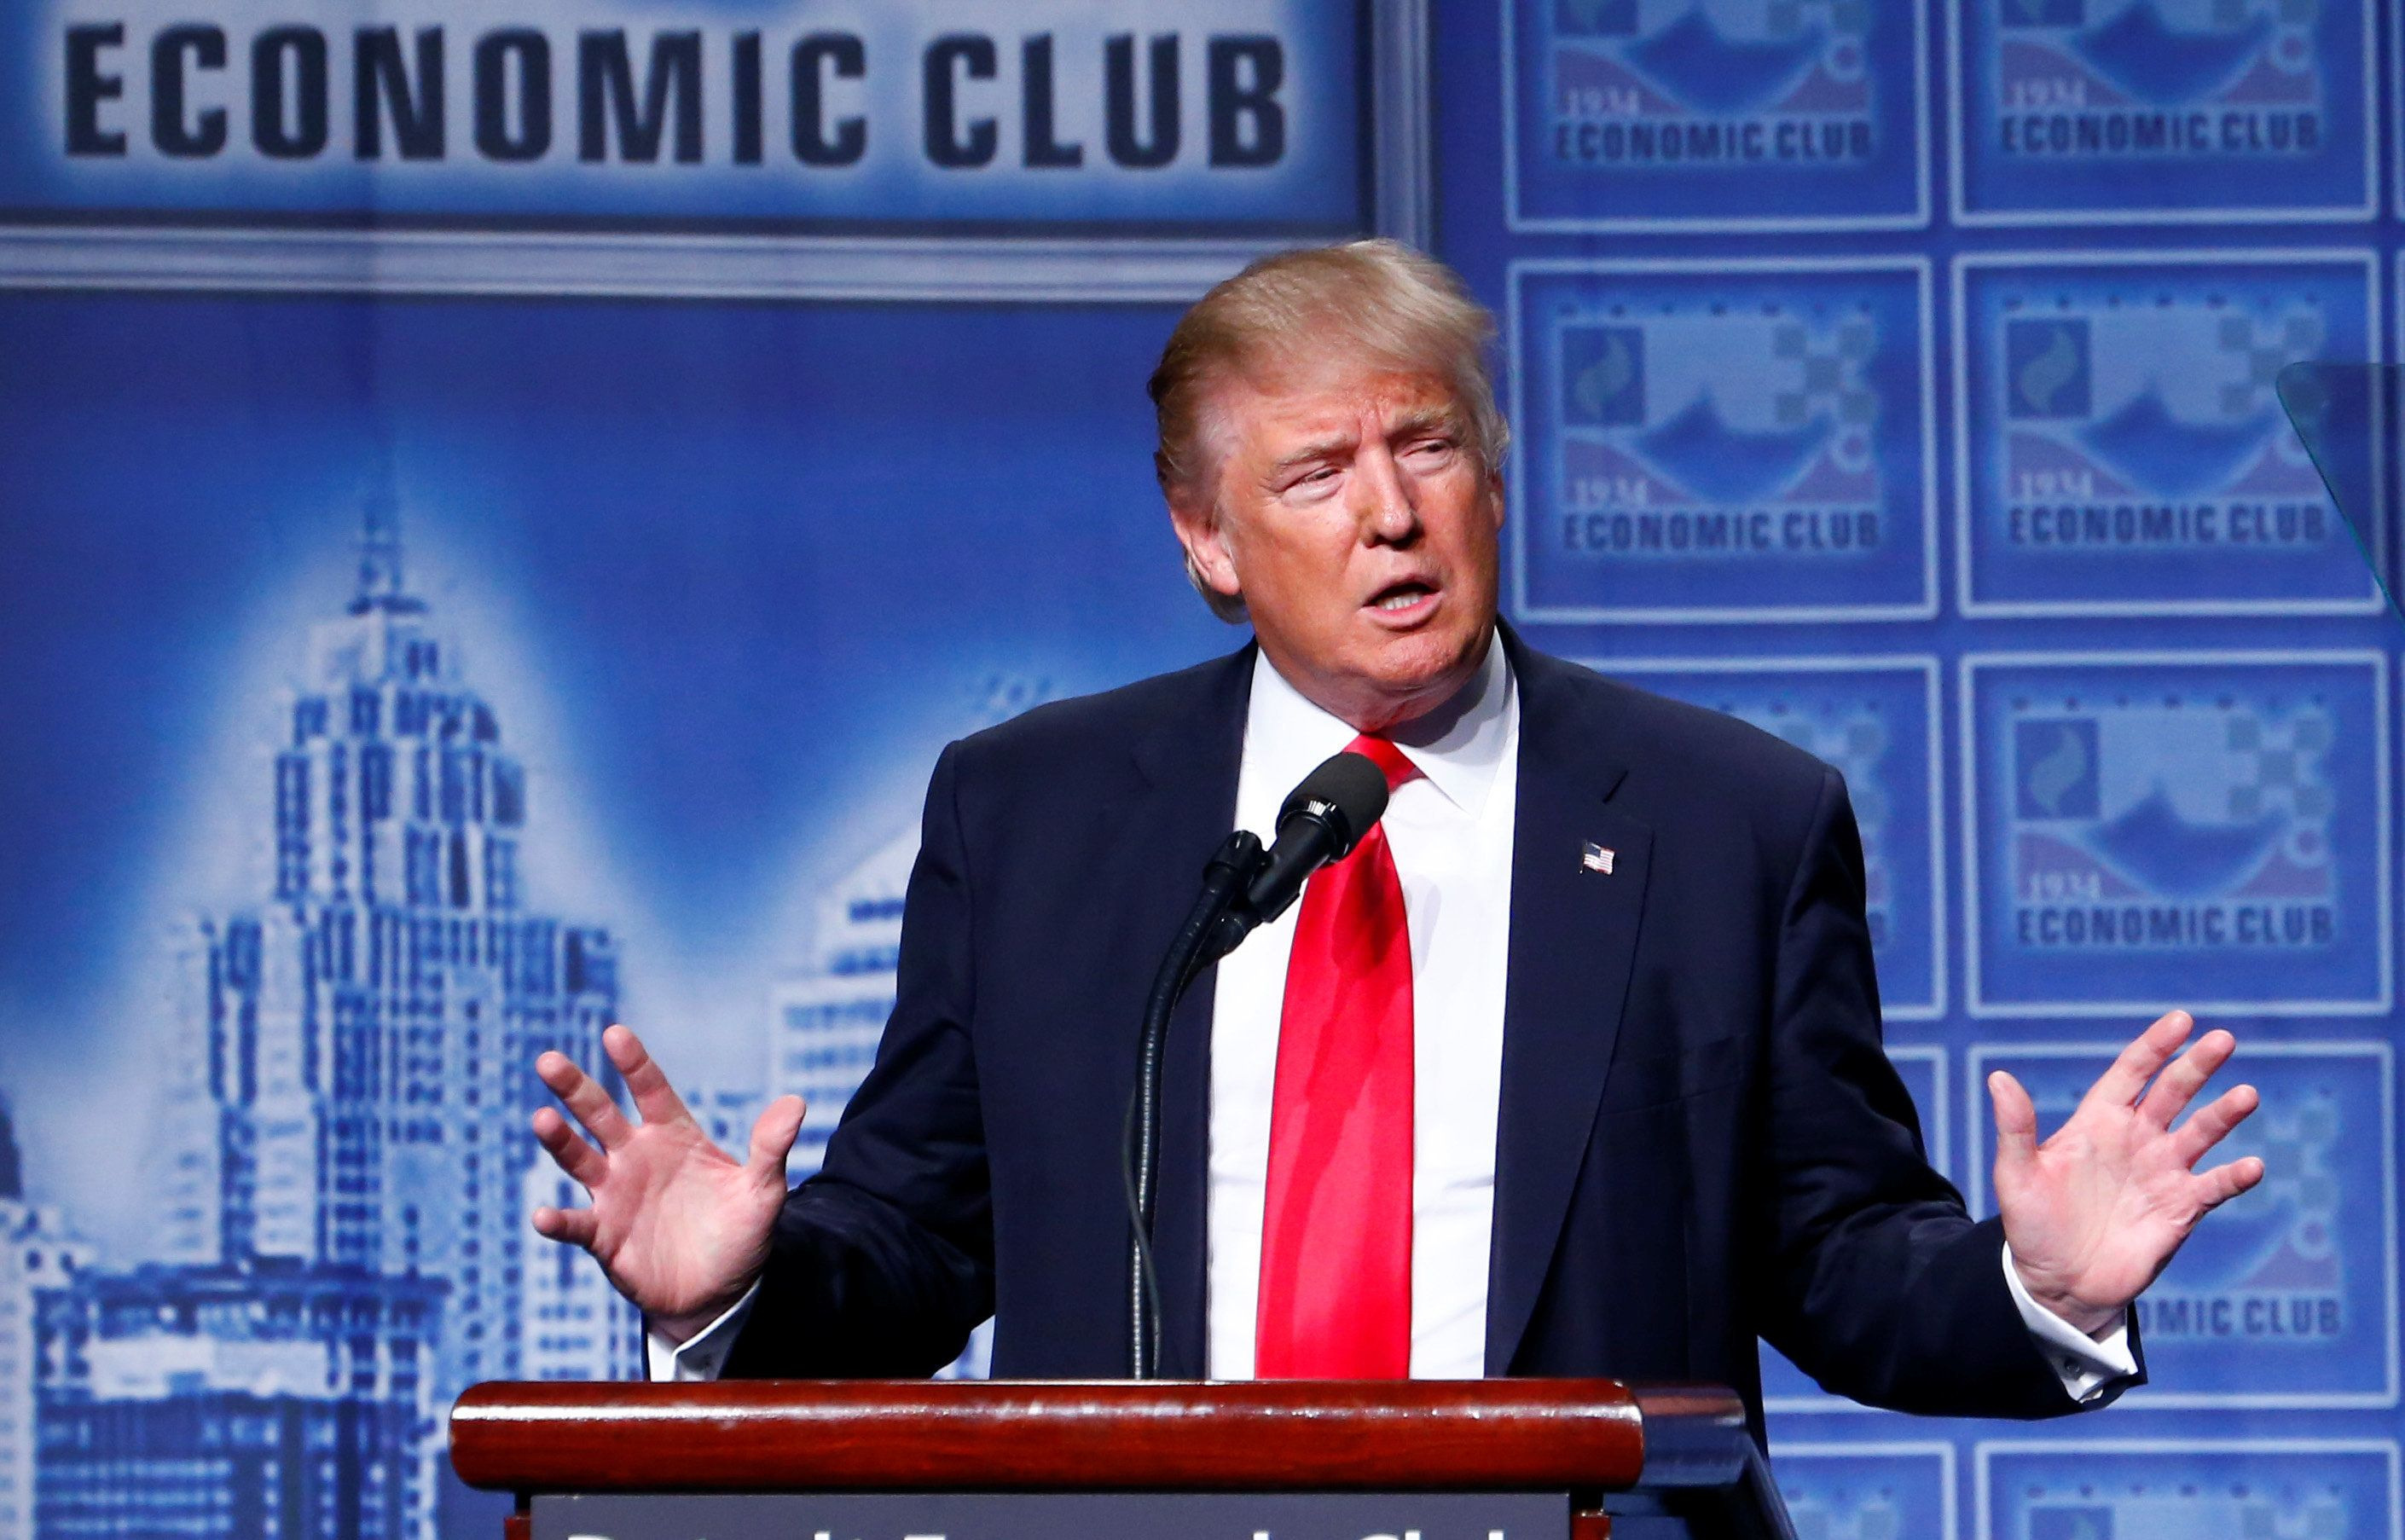 GOP presidential nominee Donald Trump had a few interruptions during Monday's speech at the Detroit Economic Club.